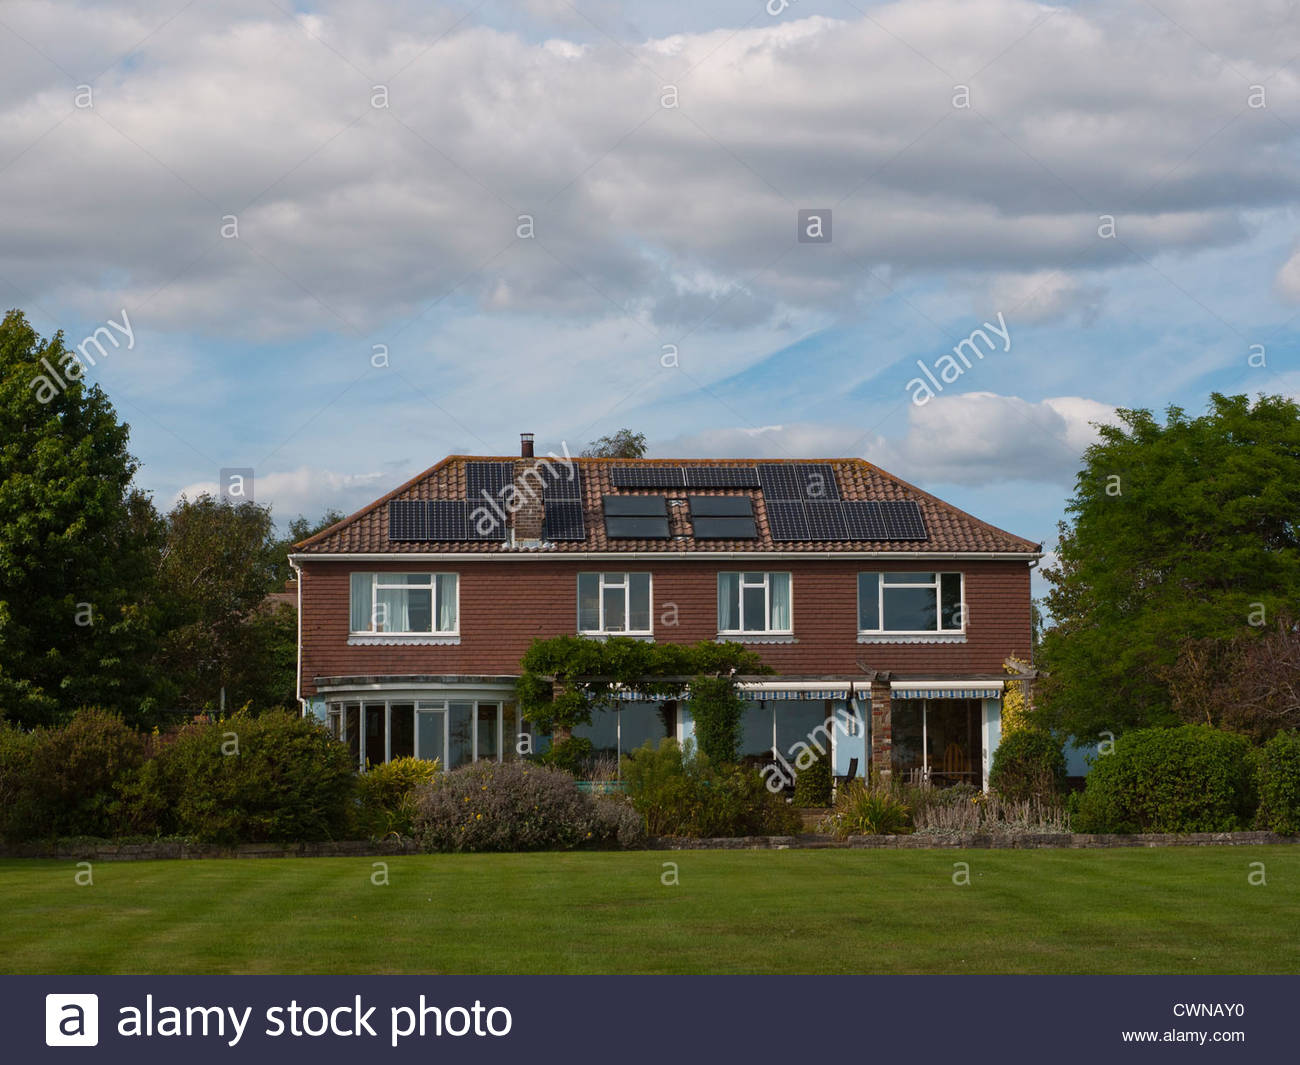 House Covered in Solar Panels - Stock Image